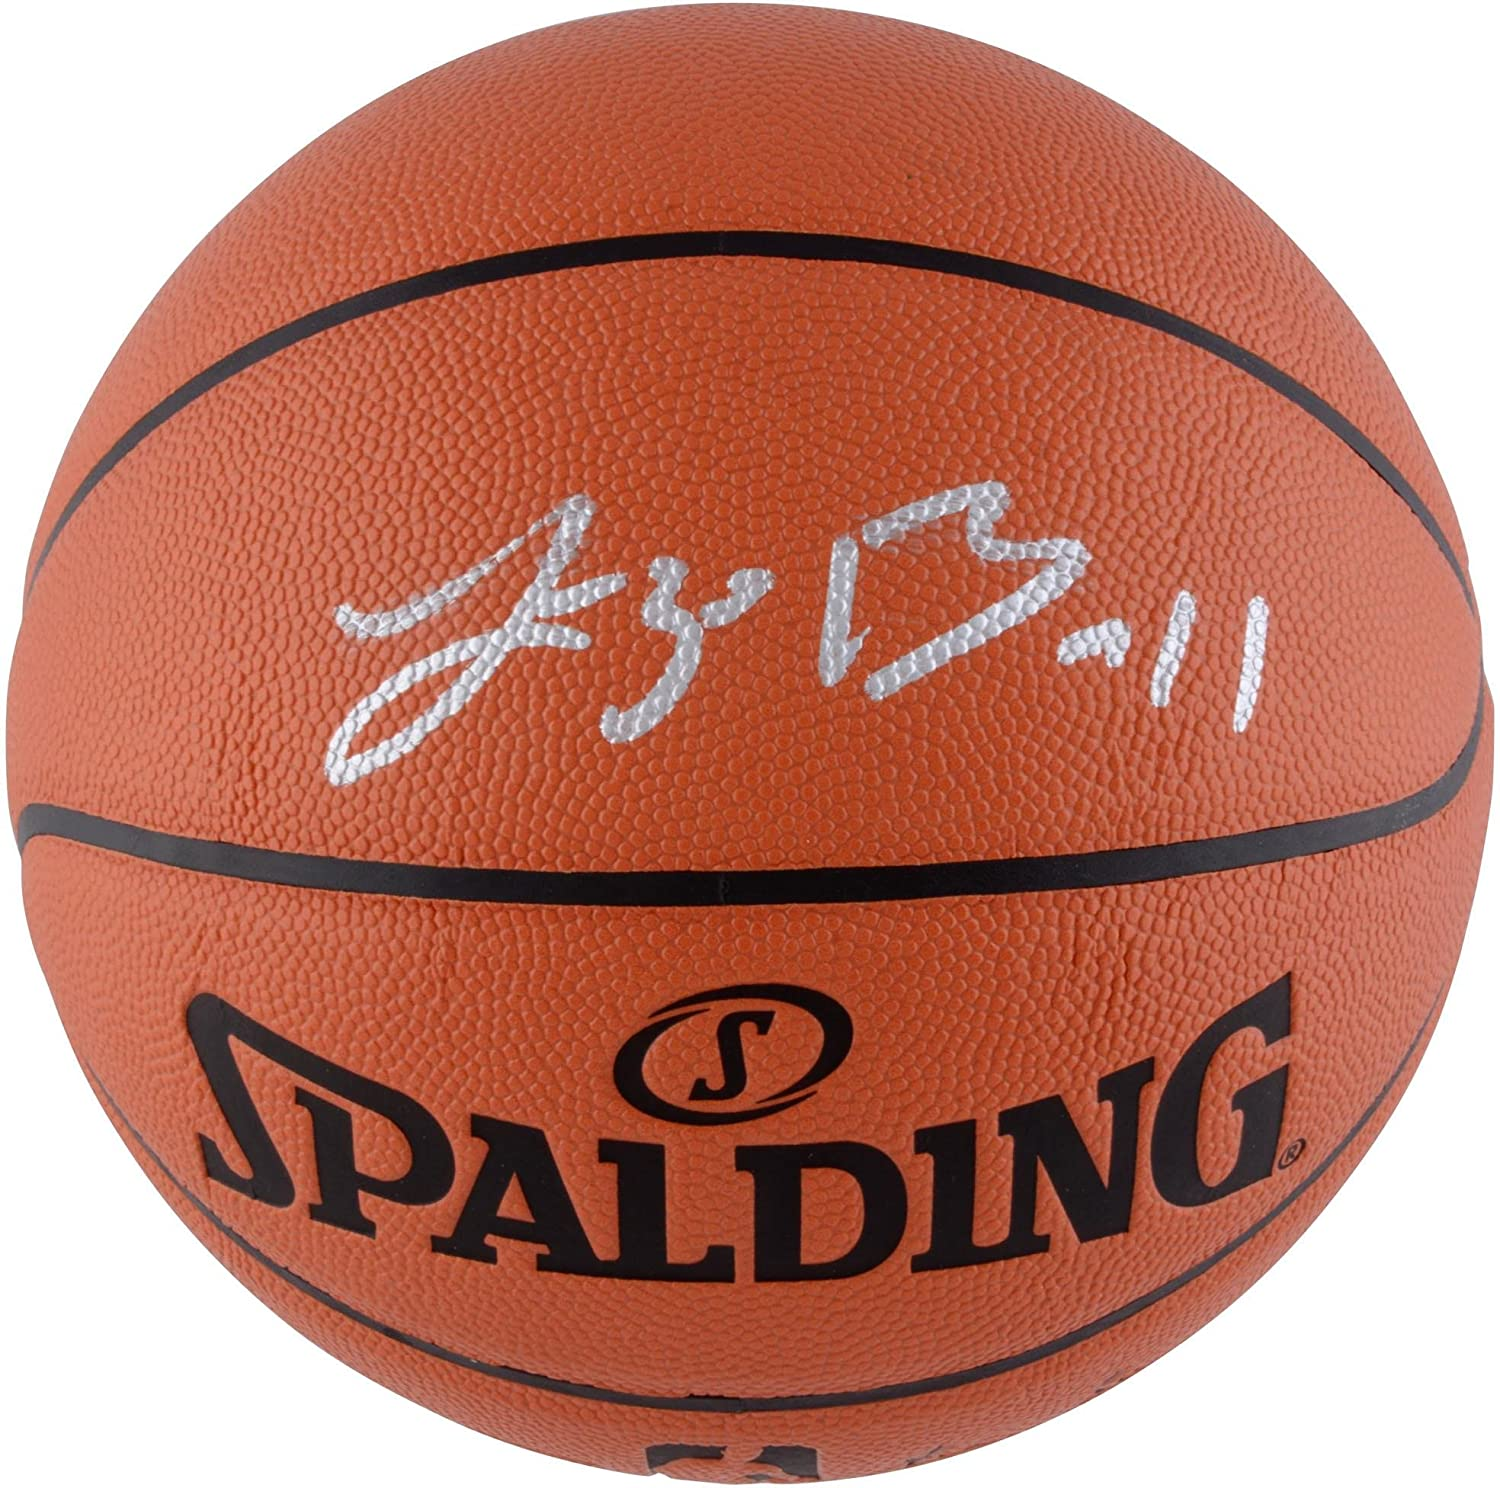 Lonzo Ball Los Angeles Lakers Autographed Indoor/Outdoor Basketball - Fanatics Authentic Certified - Autographed Basketballs